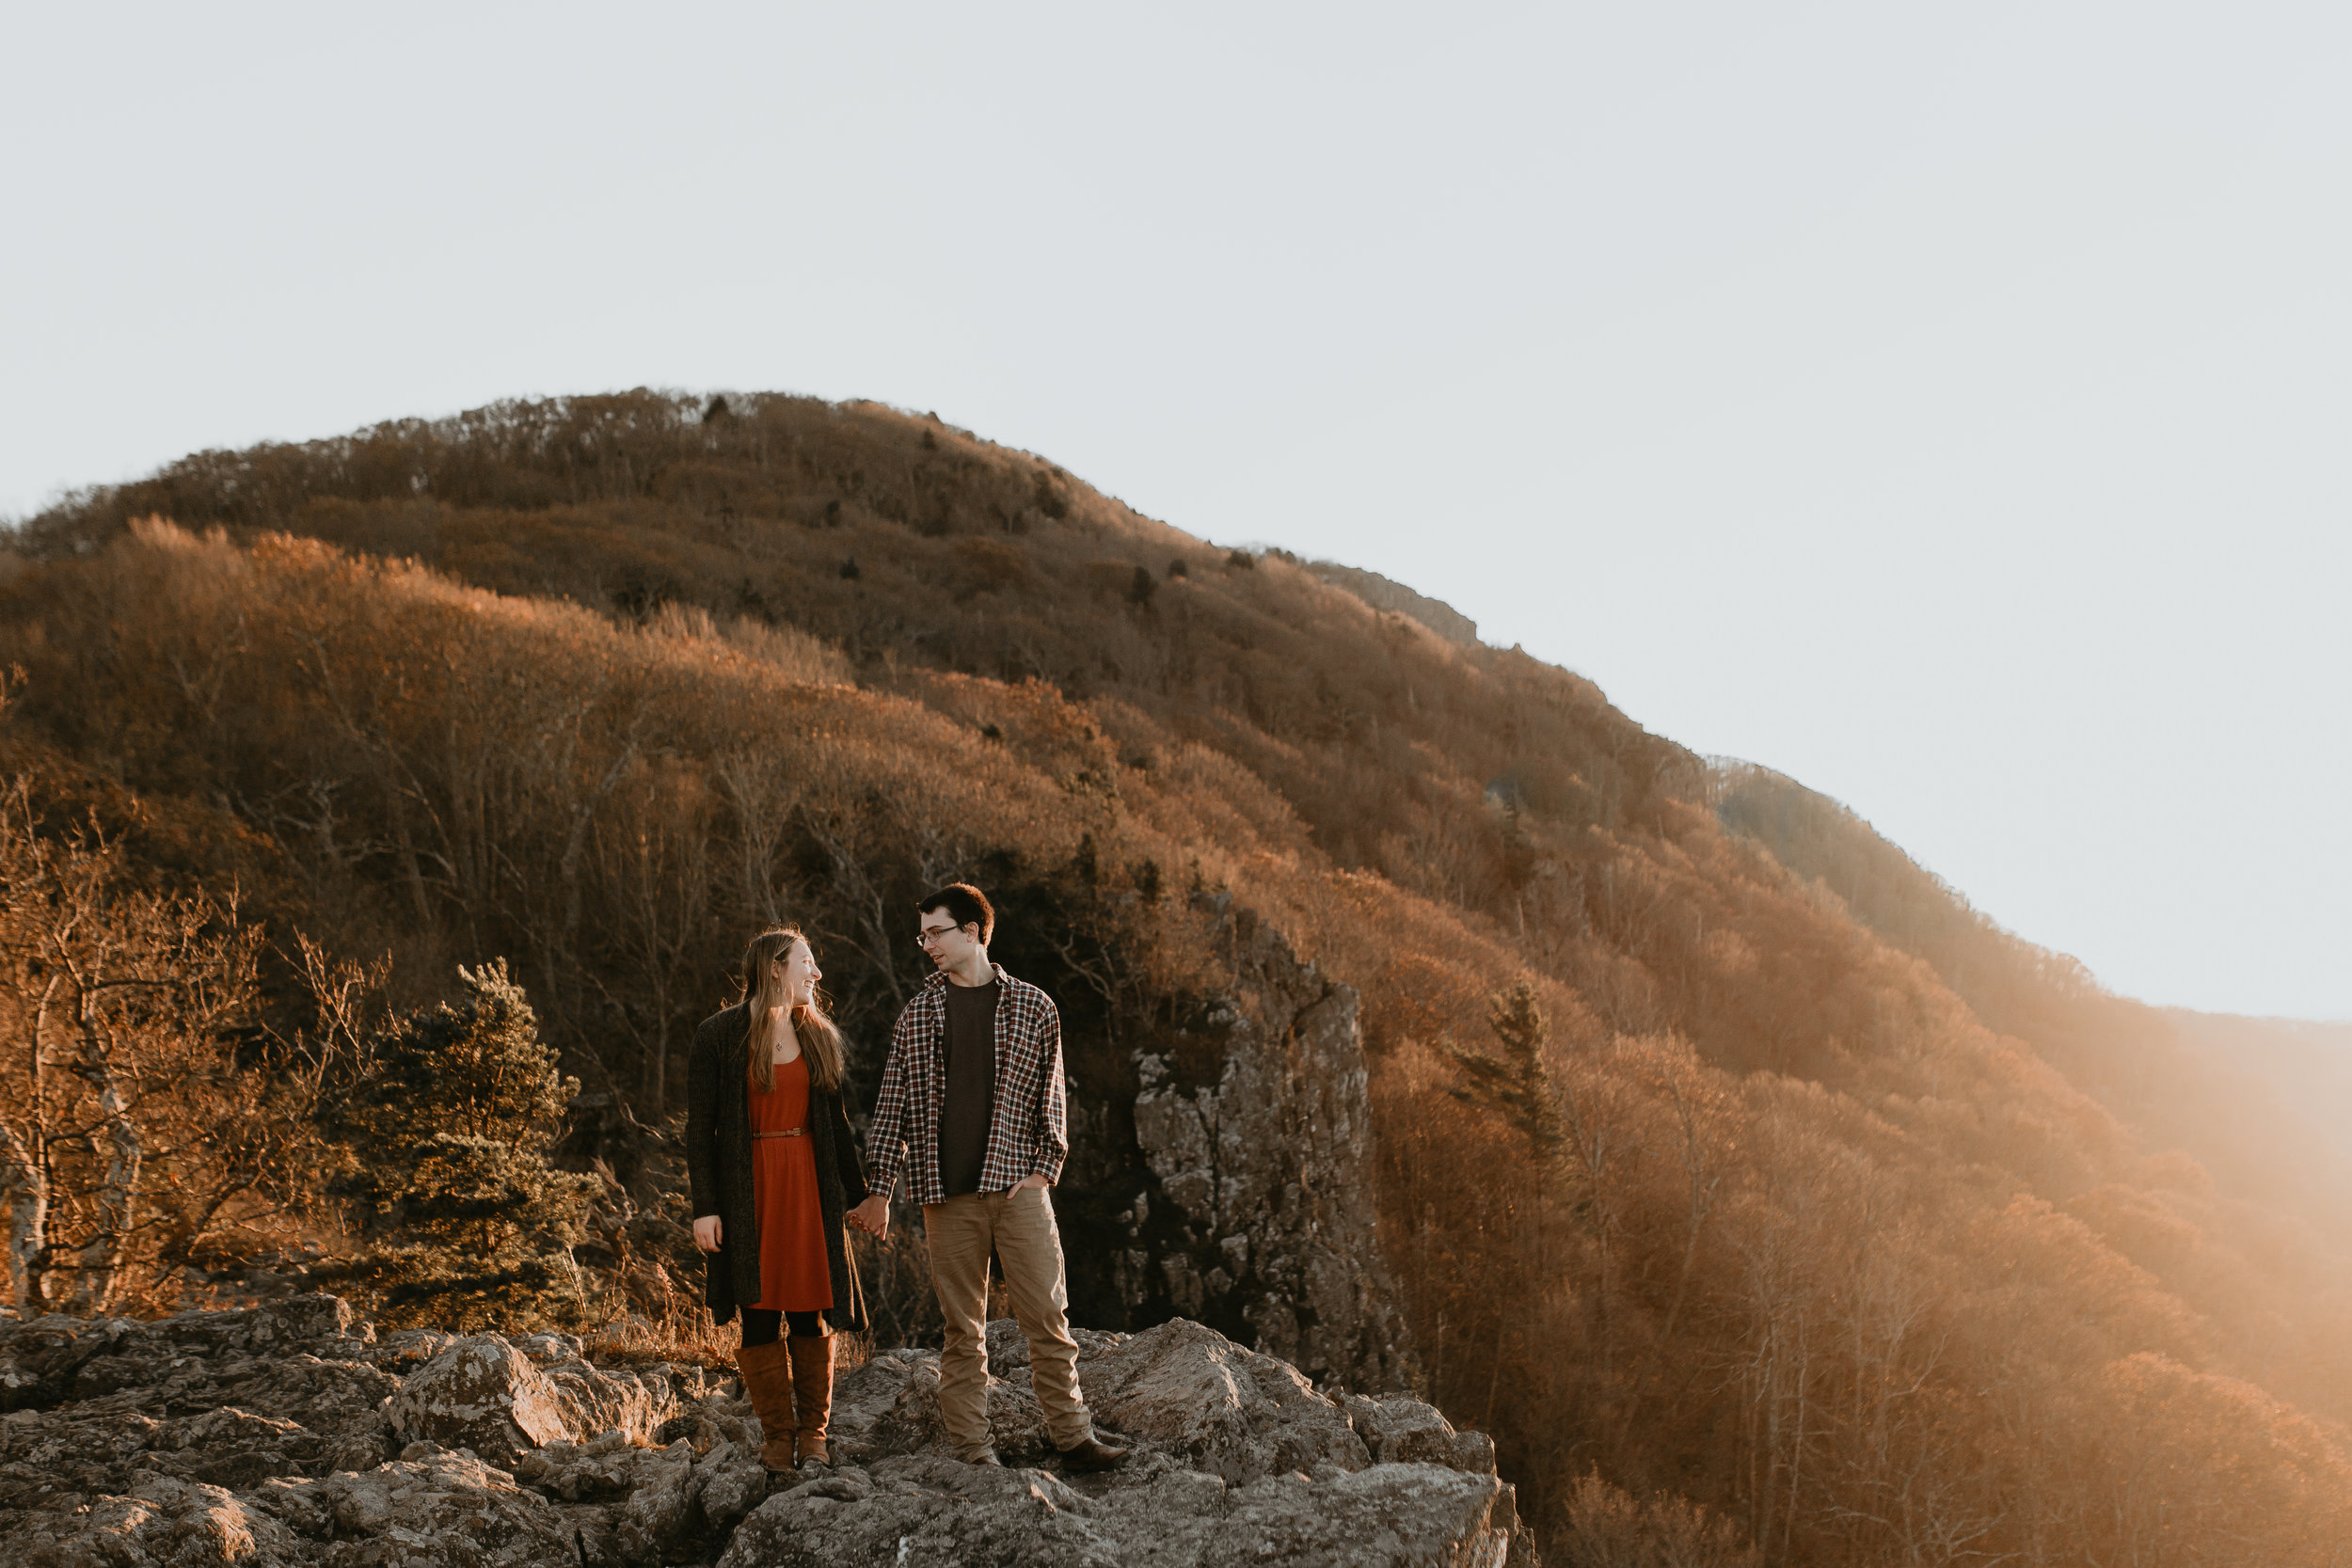 nicole-daacke-photography-shenandoah-national-park-adventure-engagement-session-with-fall-foliage-shenandoah-elopement-photographer-engagement-photos-in-virginia-charlottesville-national-park-adventure-elopement-photographer-3912.jpg